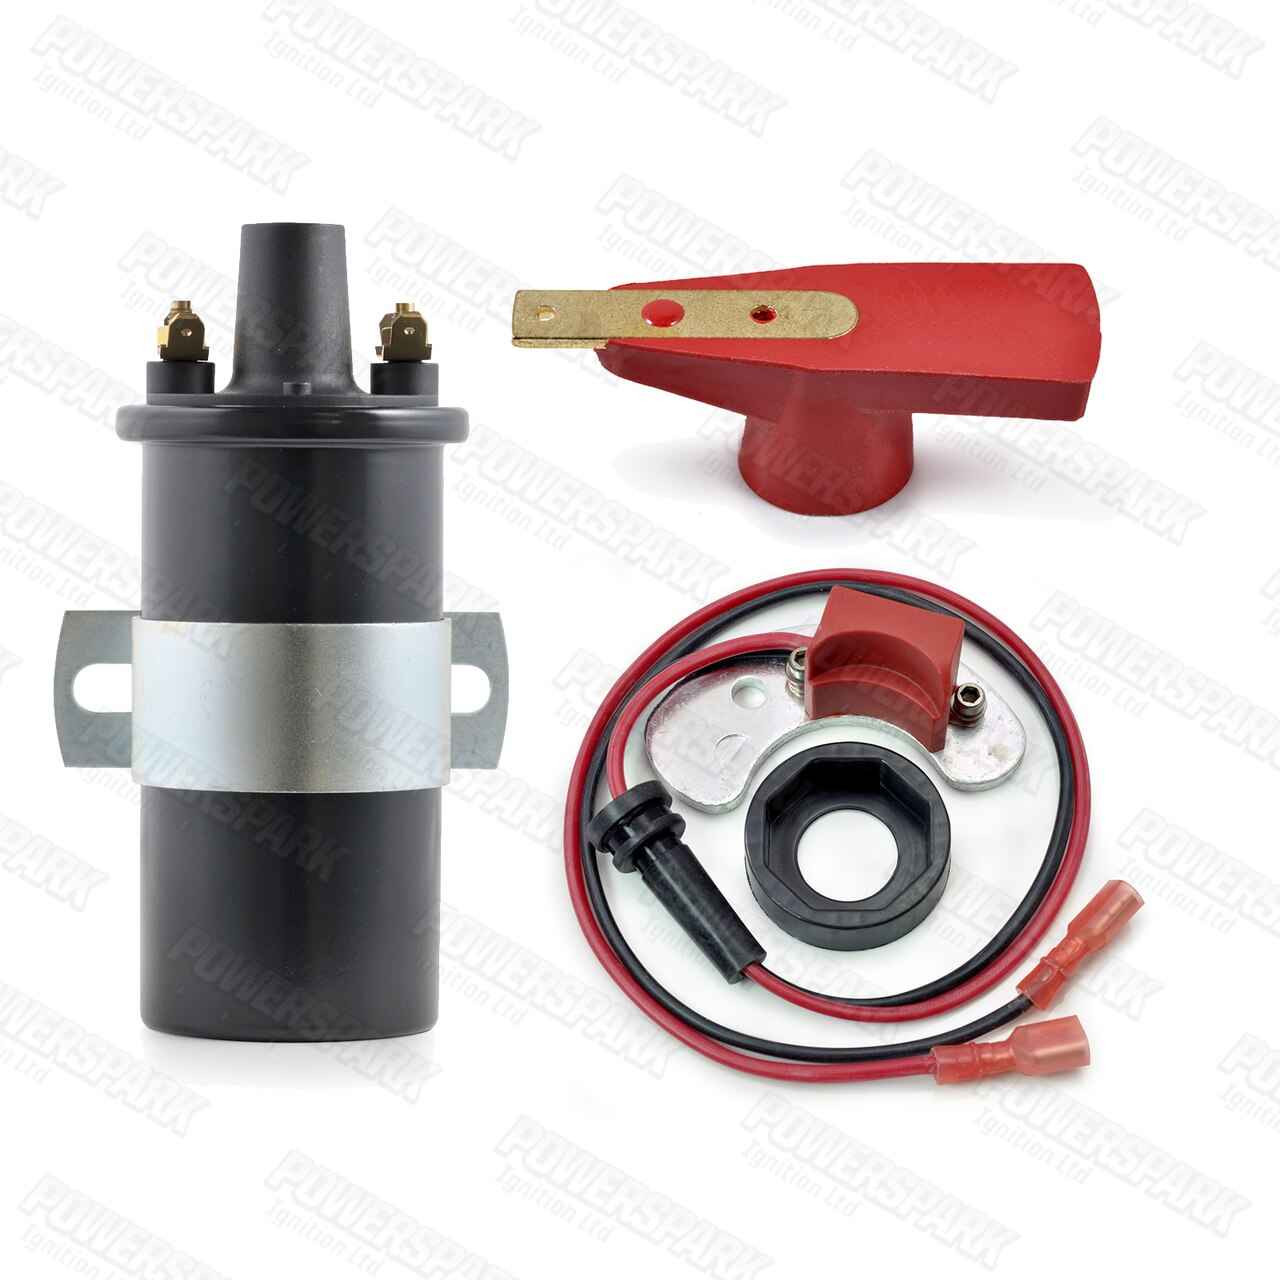 Powerspark 35D V8 Electronic Ignition Conversion Bundle with Coil and Rotor